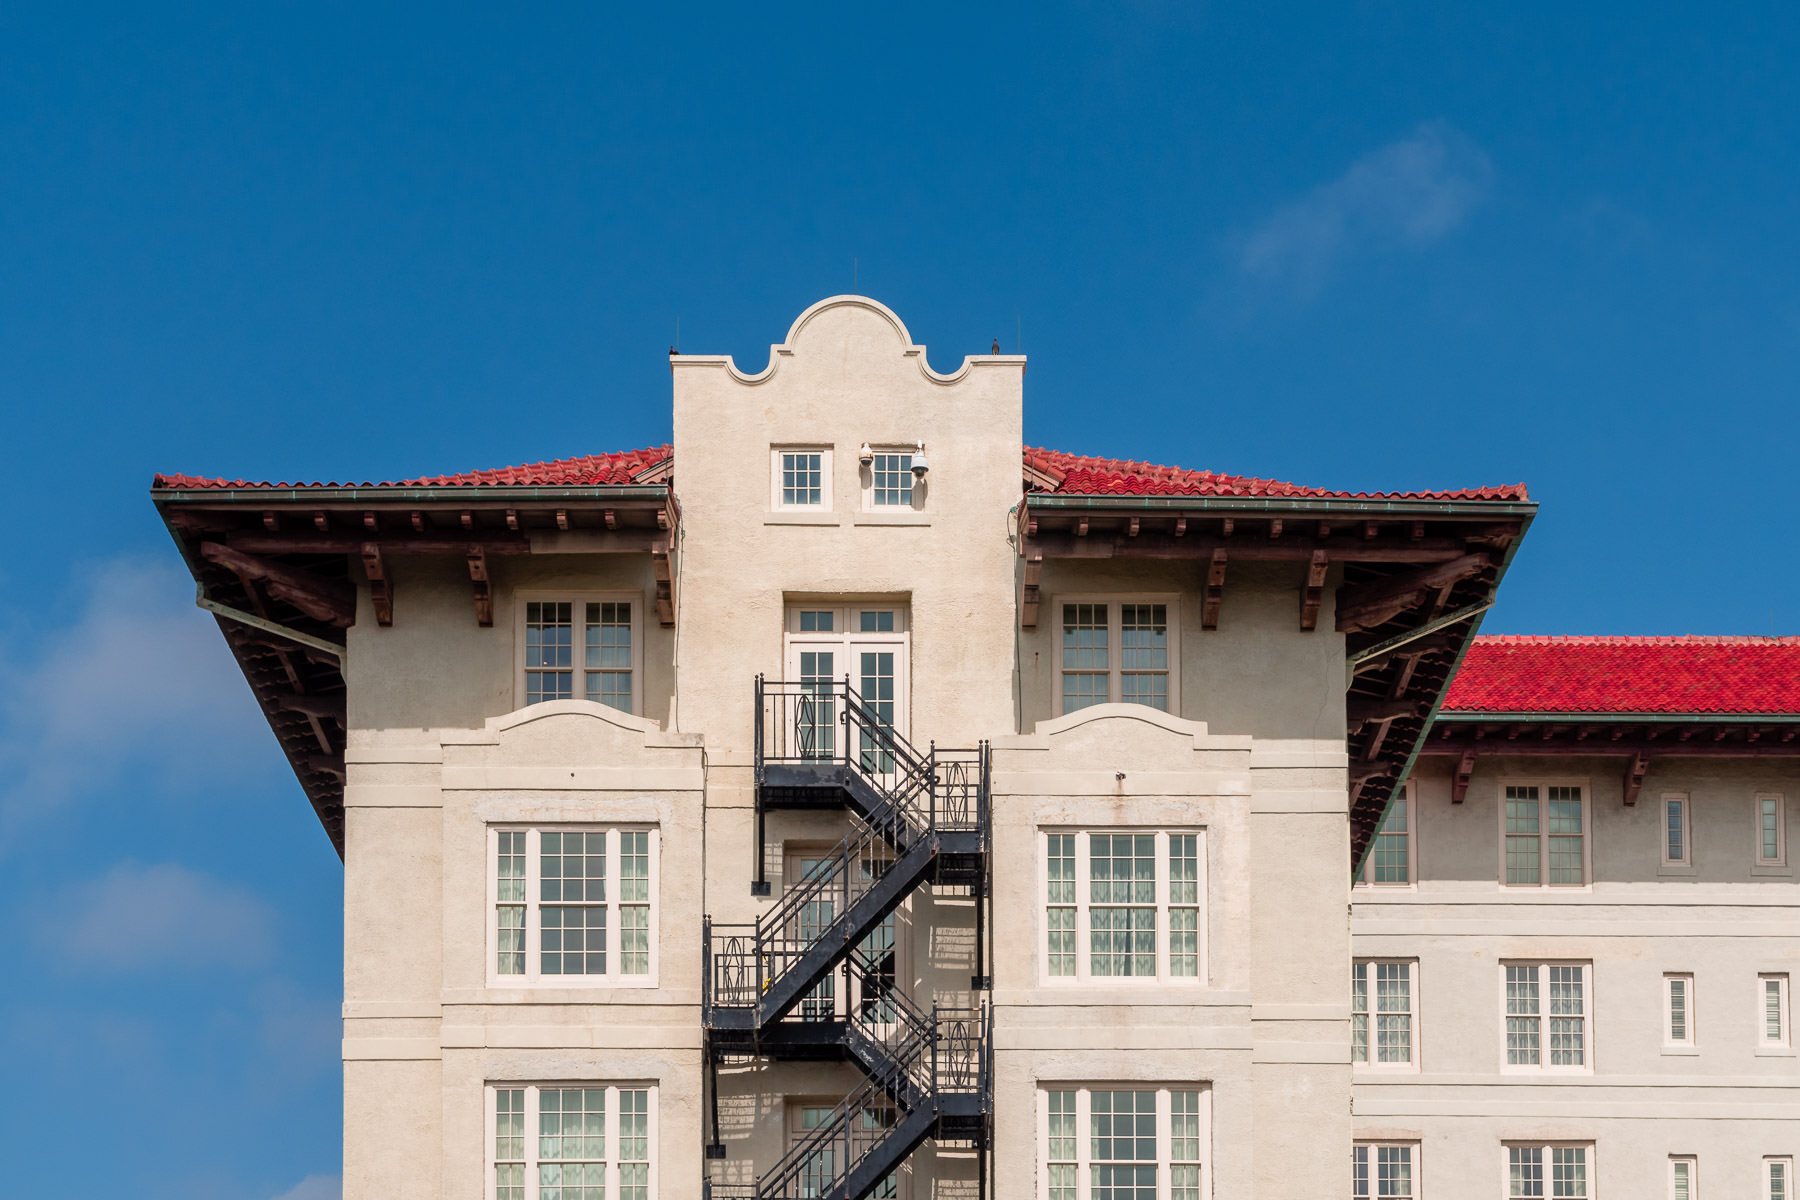 Architectural detail of the historic Hotel Galvez, Galveston, Texas.